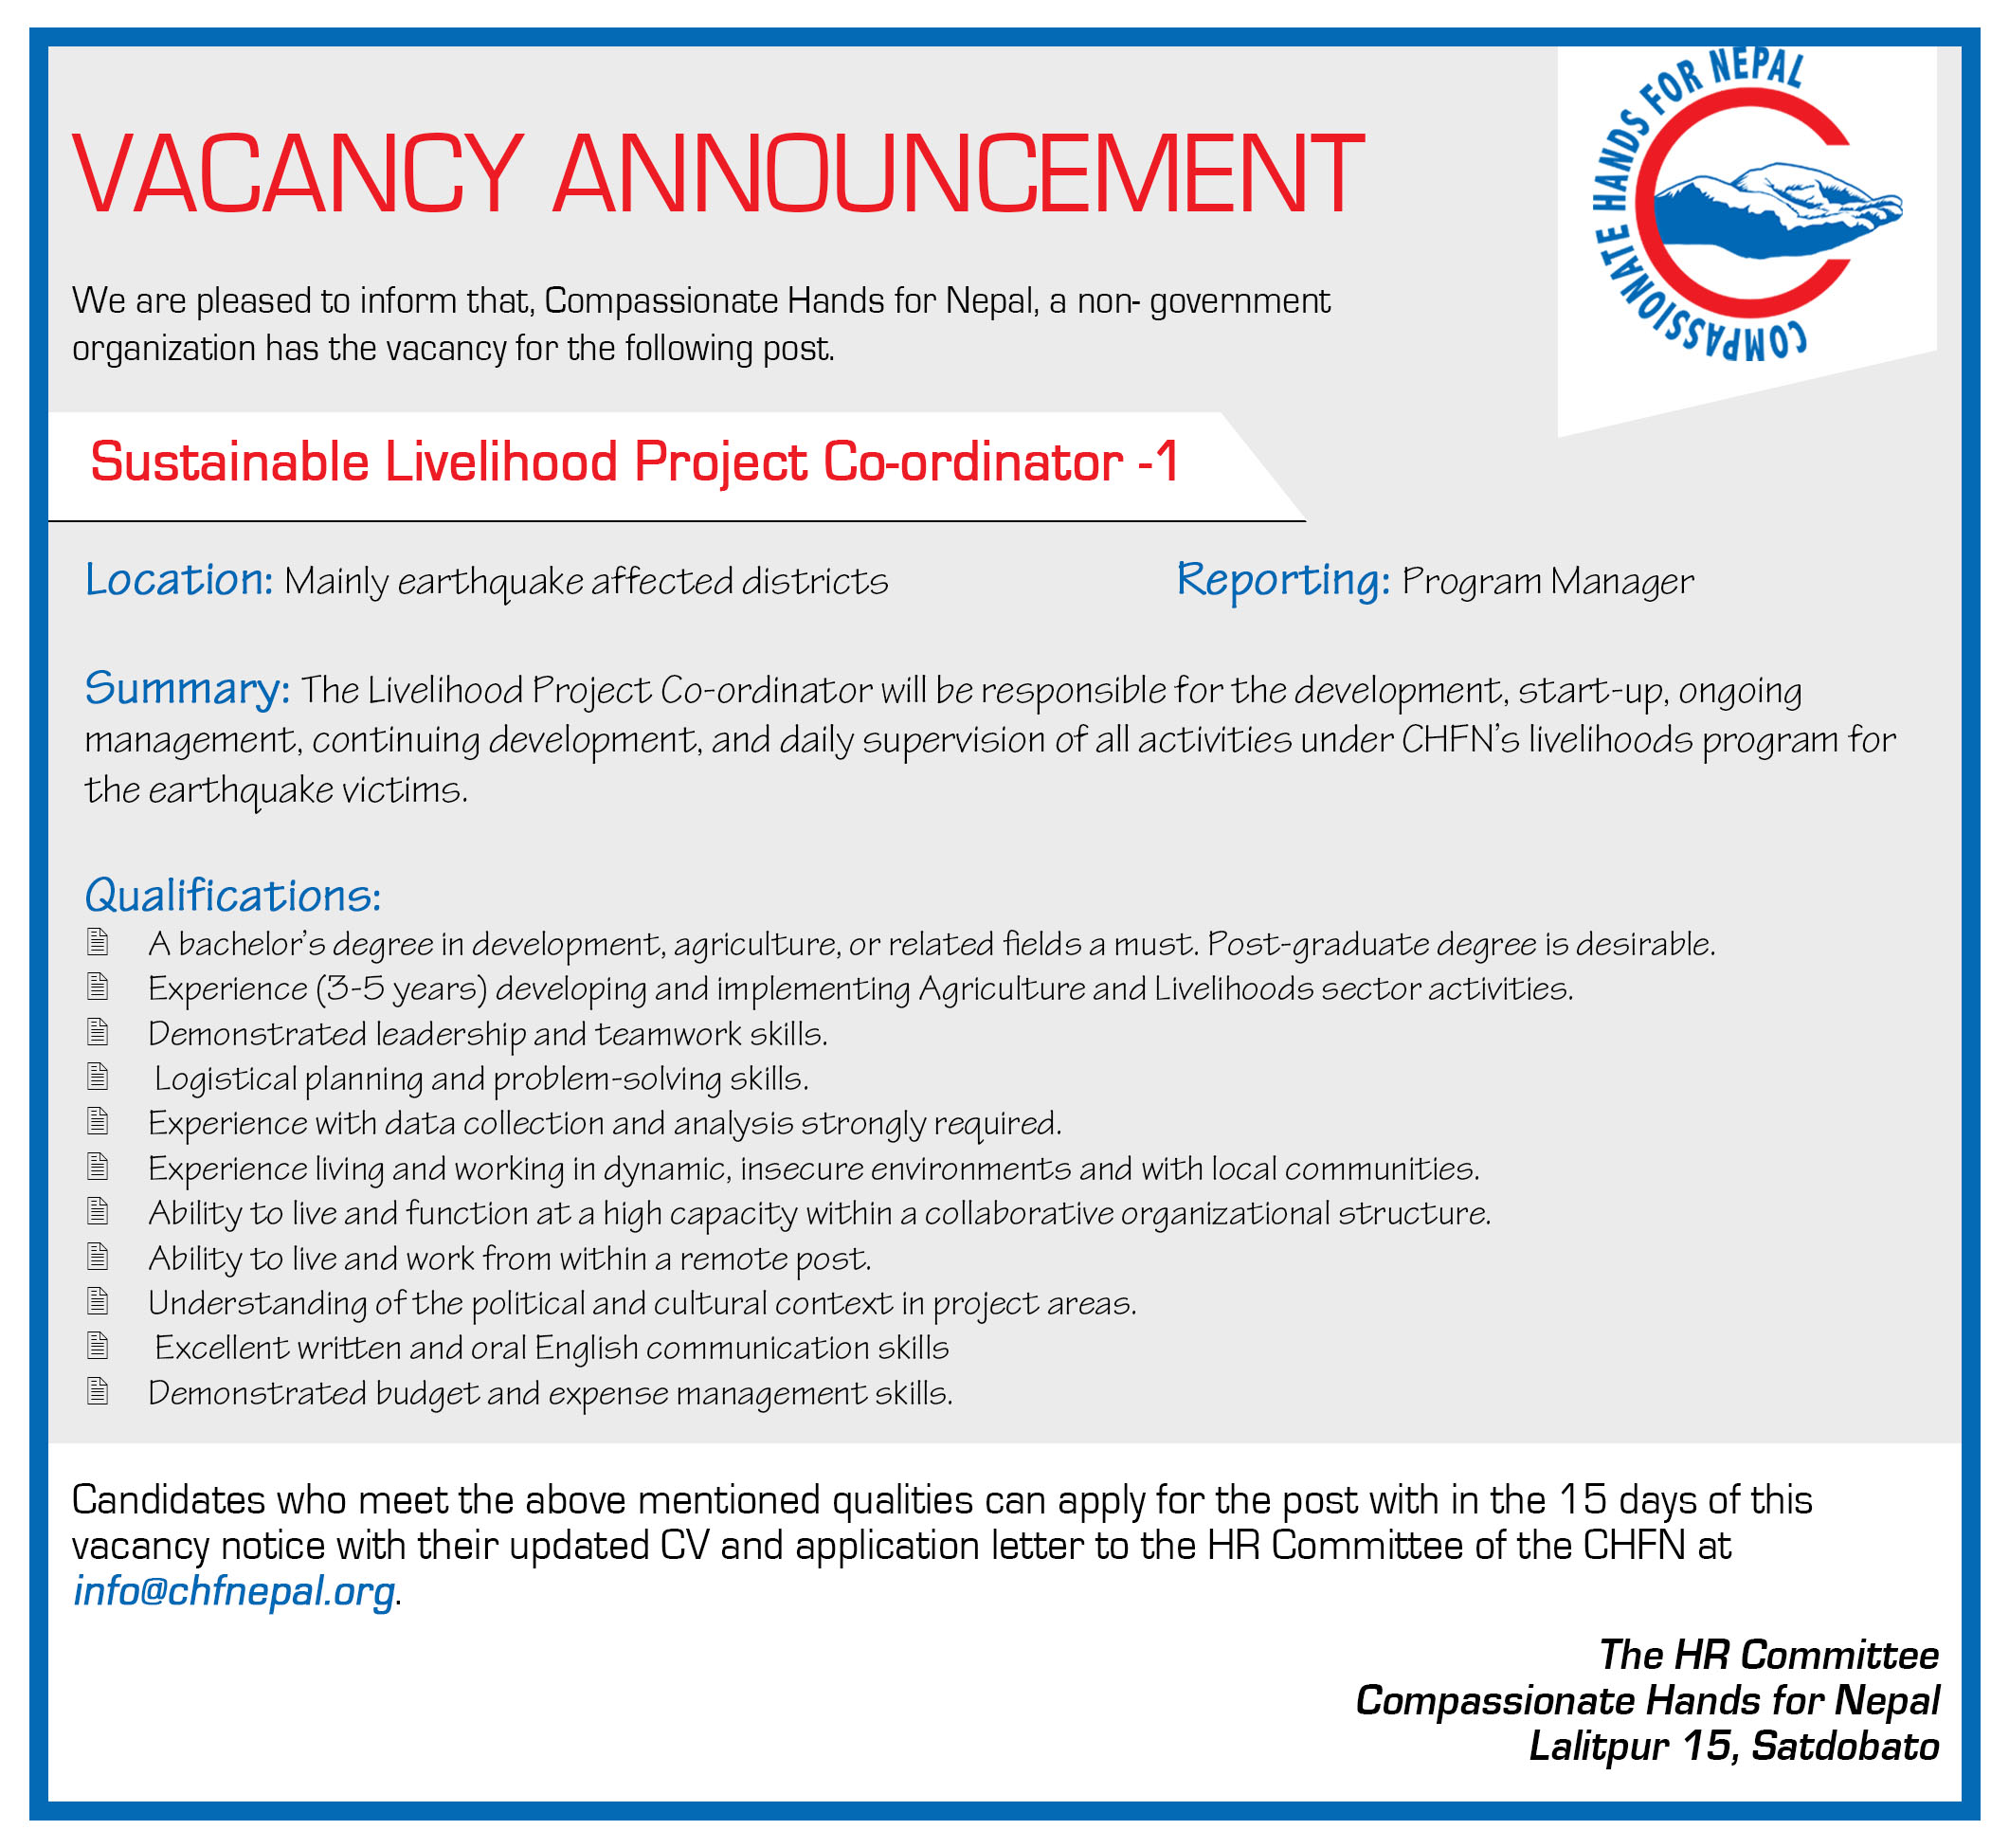 vacancy-announcement-2073